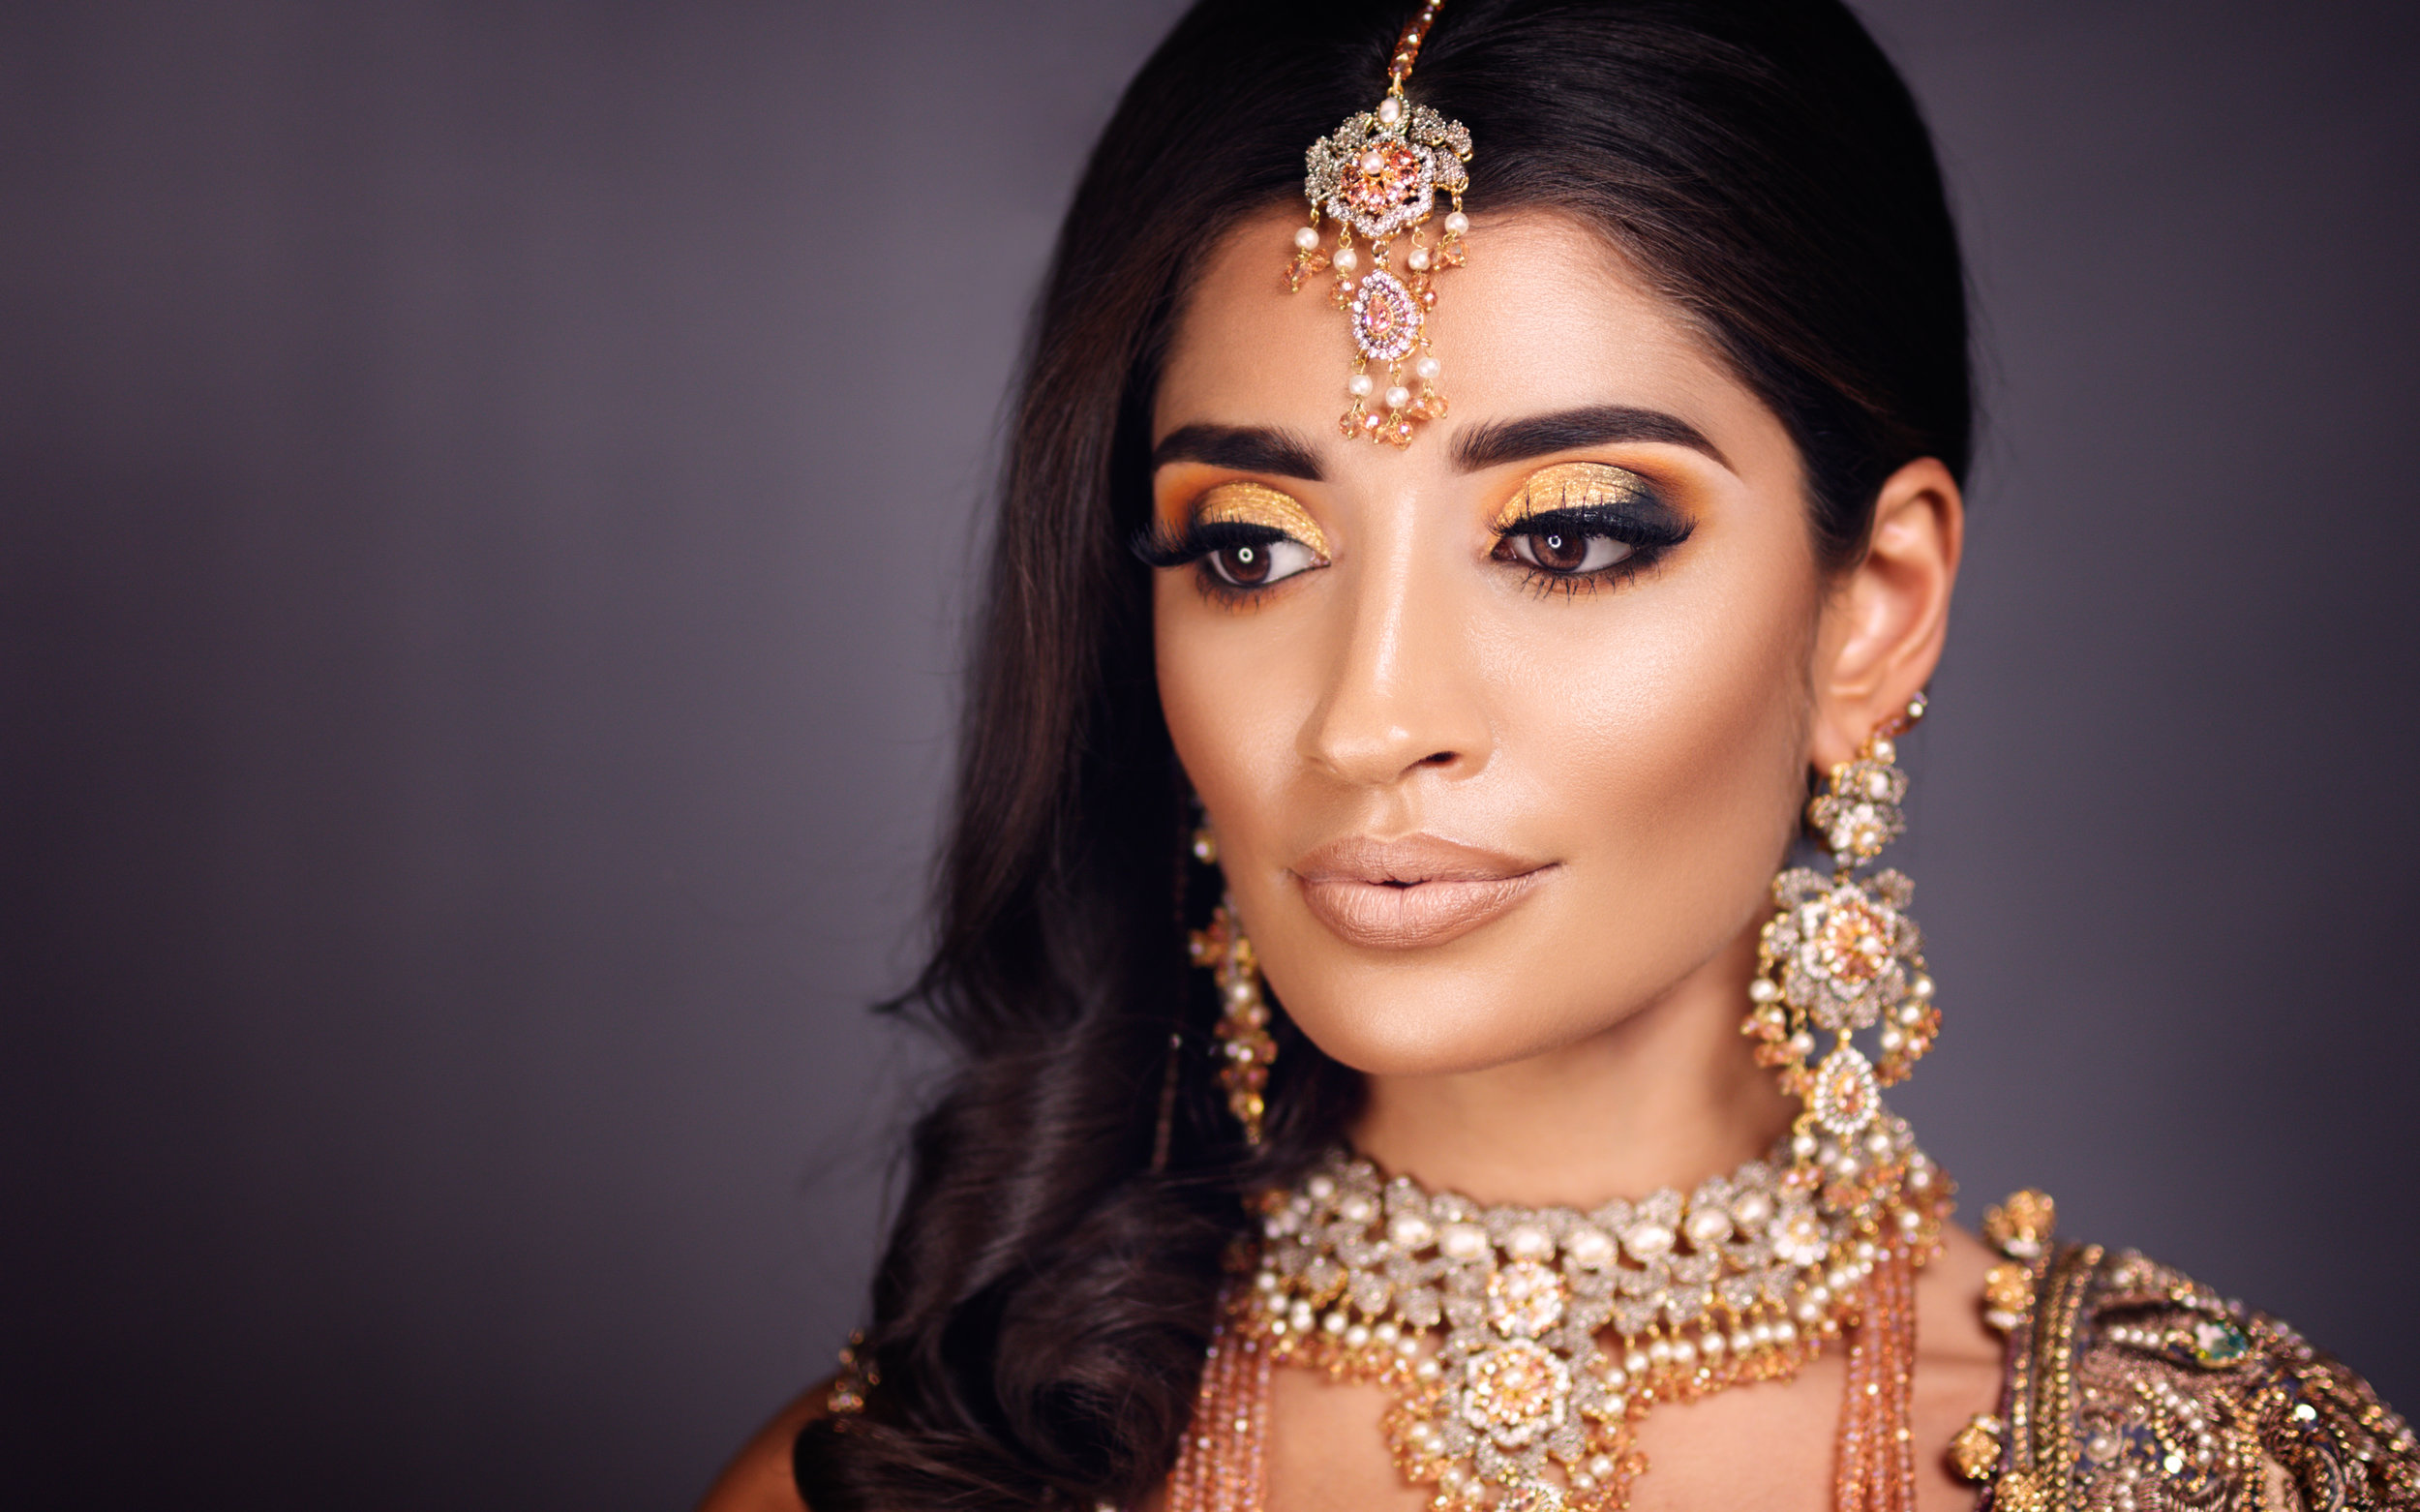 Makeup and jewellery photography. Asian bridal makeup and jewellery. MUA. Glasgow based photographer. Portrait, corporate headshot, wedding photographer, interior photographer, commercial and content photography Scotland. Copyright @cursetheseeyes www.cursetheseeyes.com